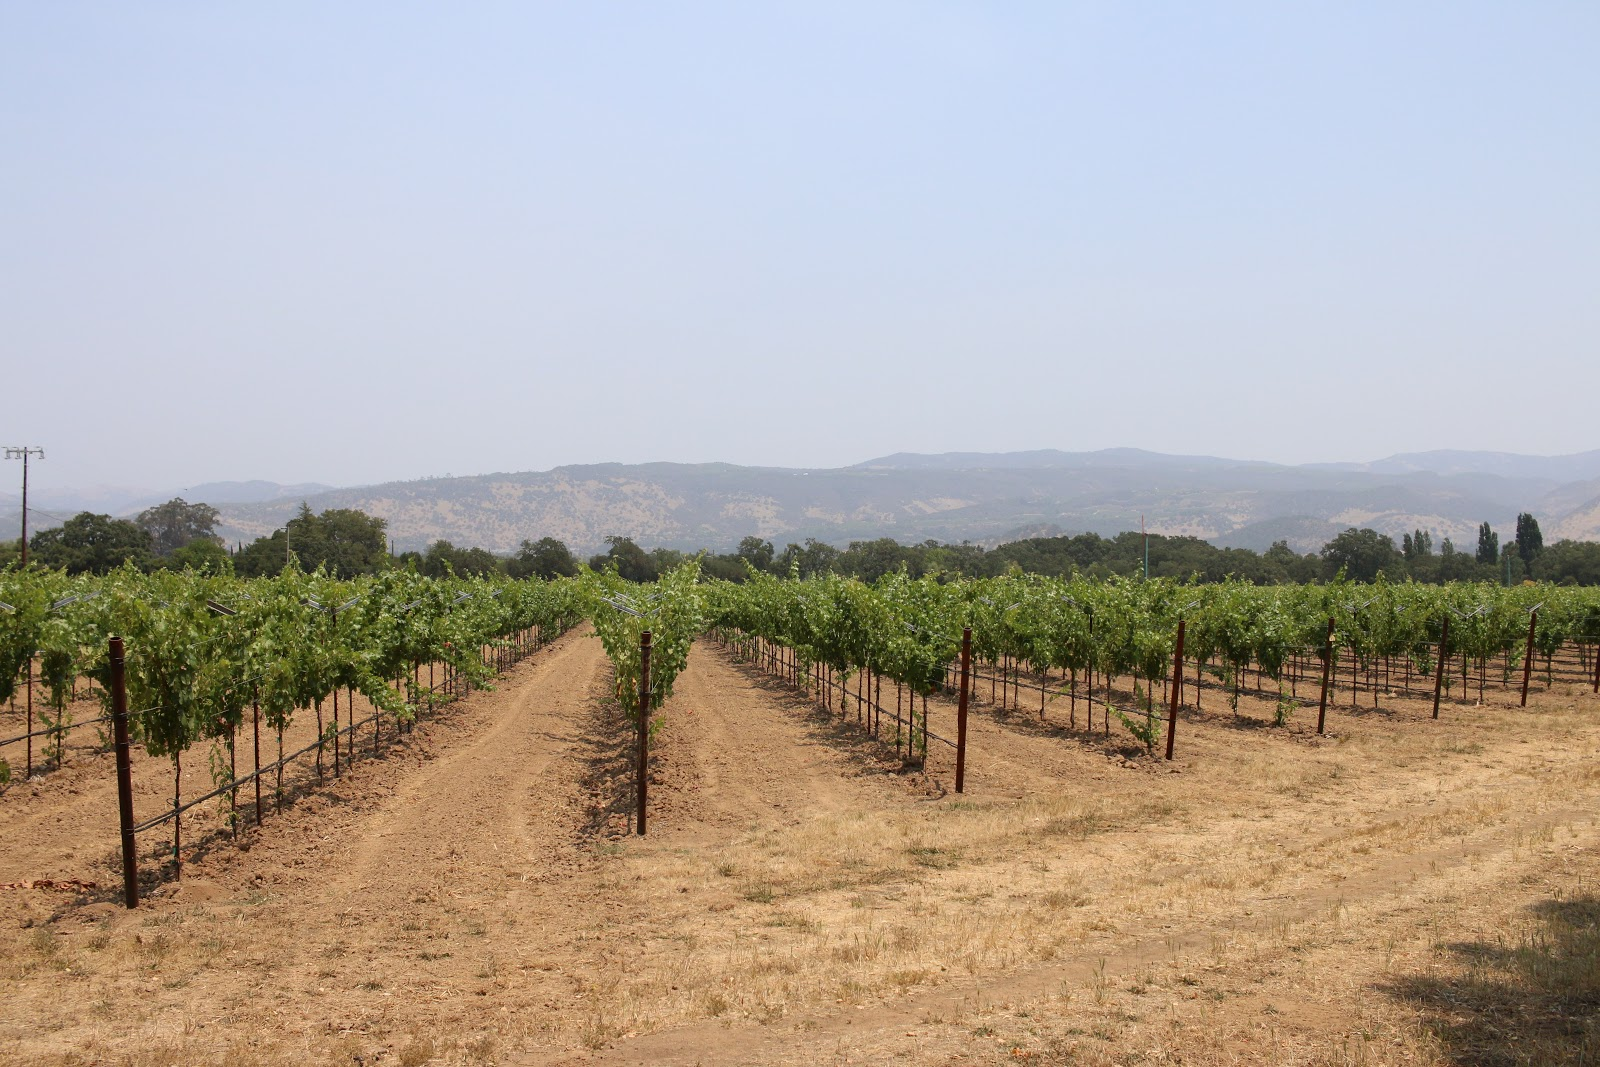 Bicycling best road in Napa County - Oakville Grade Road - photo of vineyards